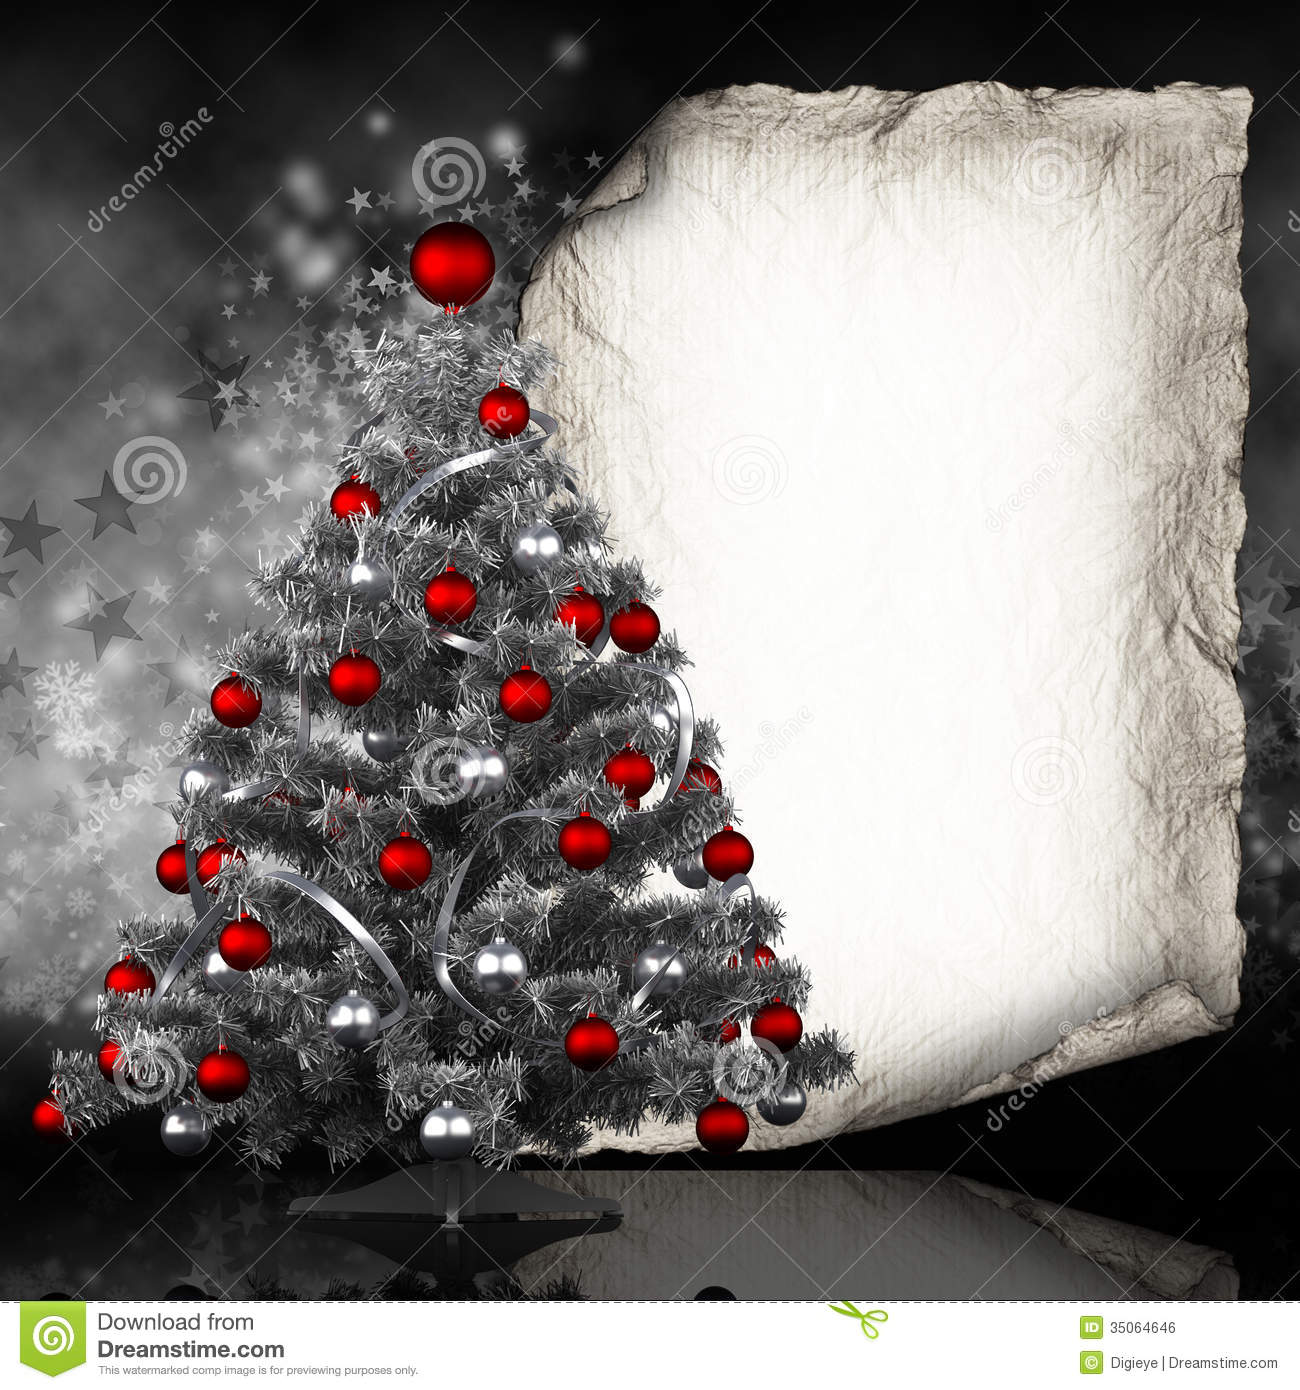 Free Christmas Card Templates.Christmas Card Template Stock Illustration Illustration Of